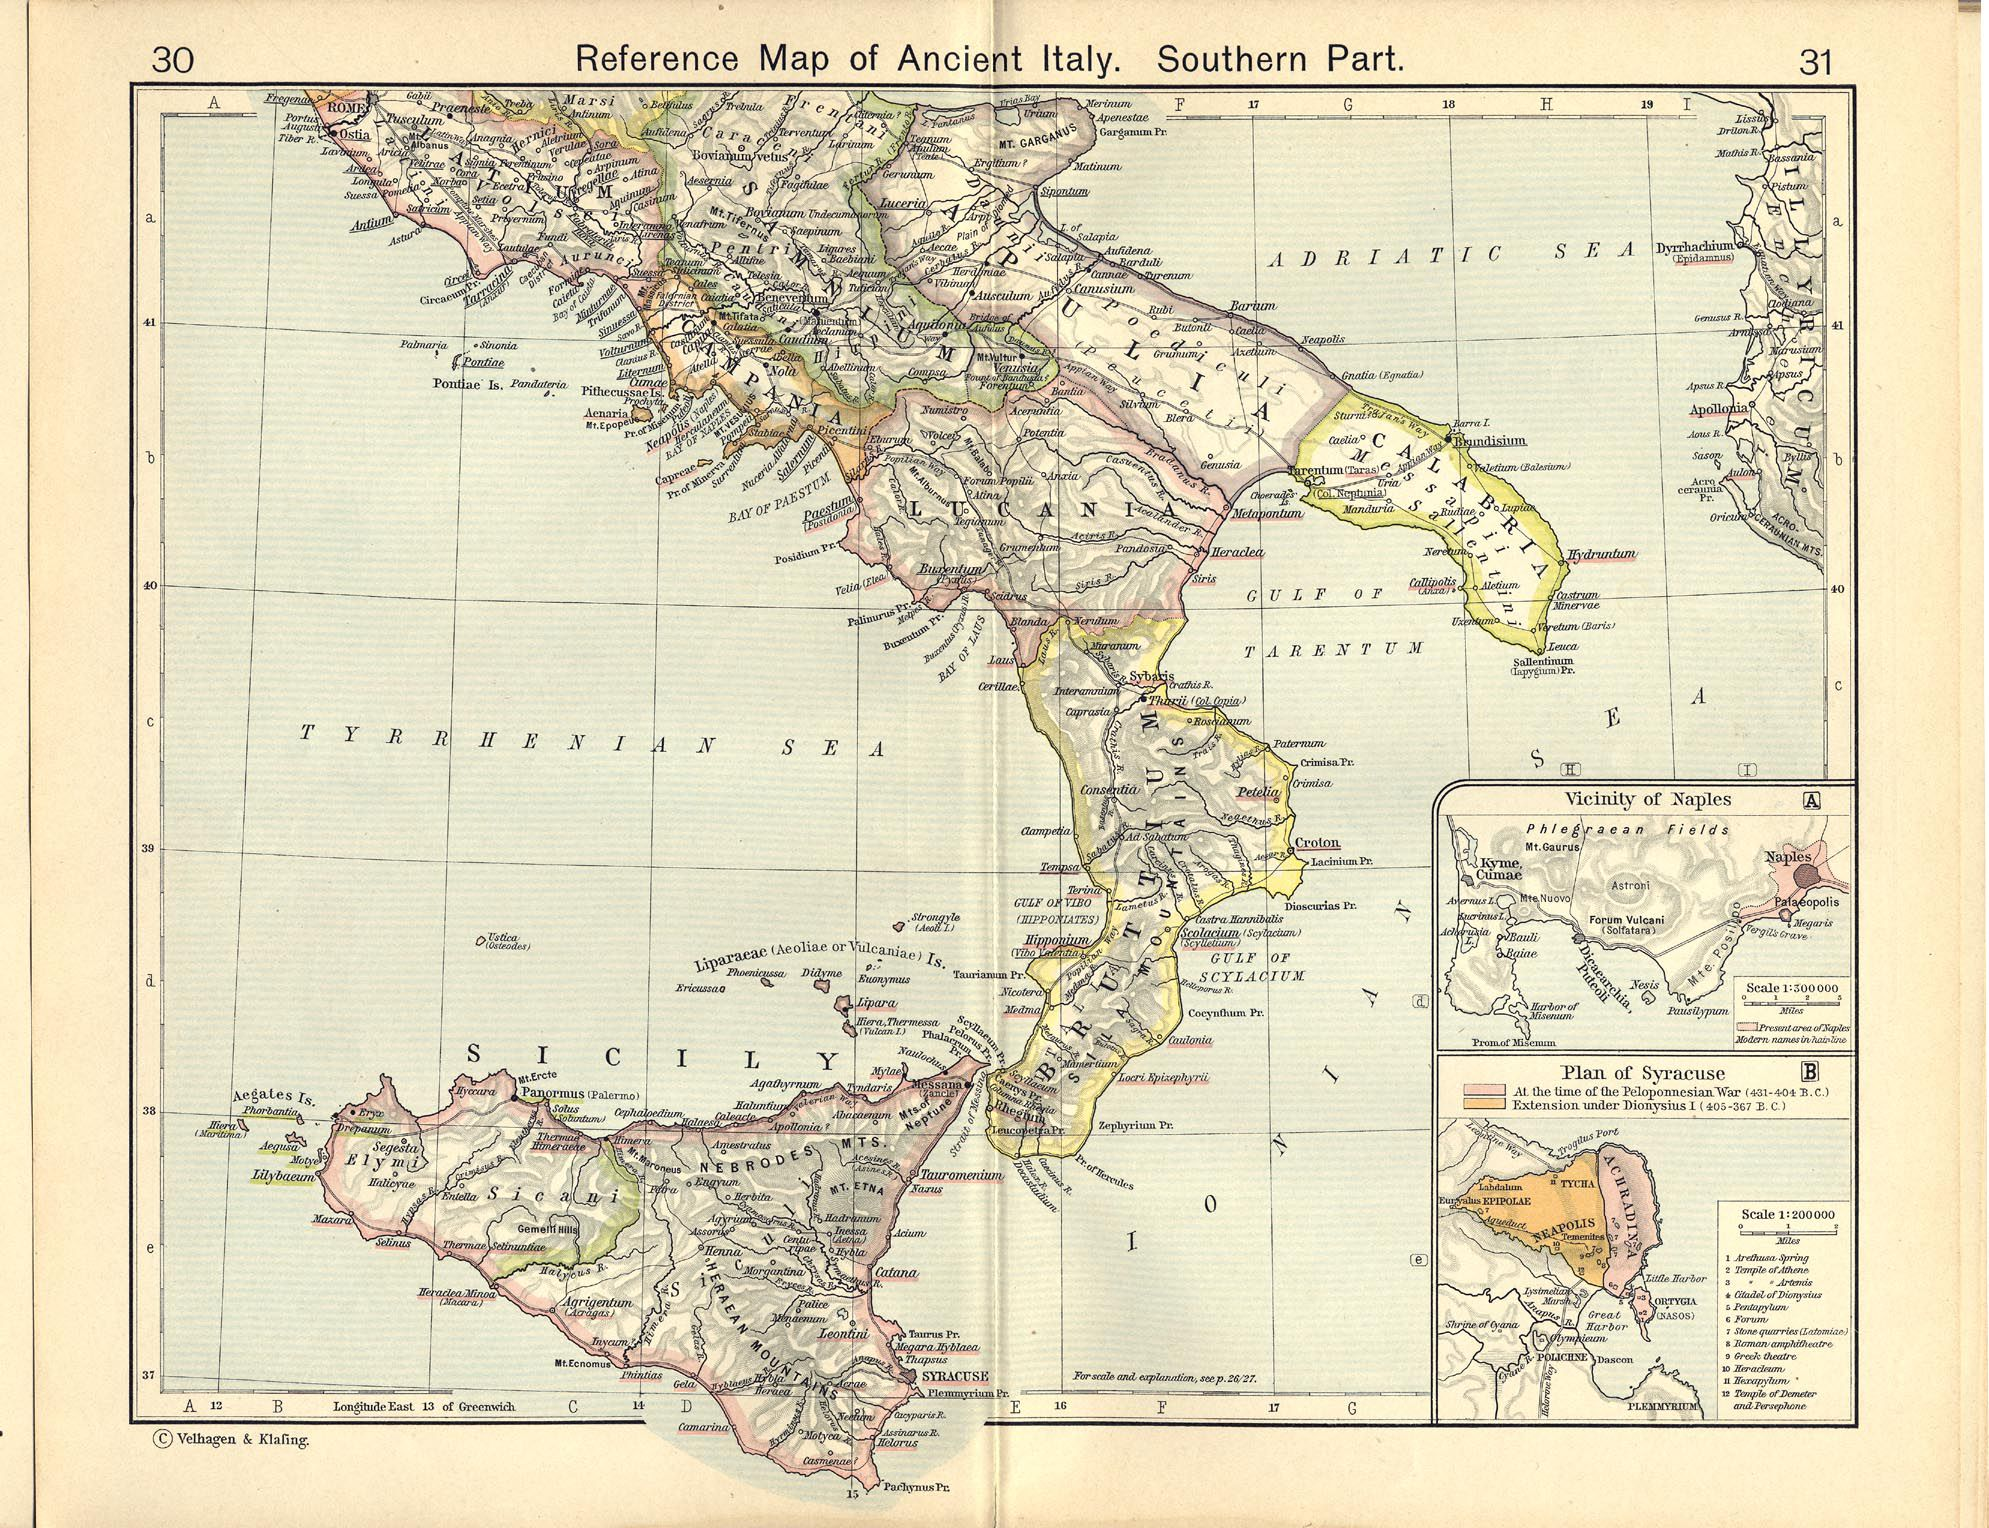 Italy - Reference Map of Ancient Italy, Southern Part